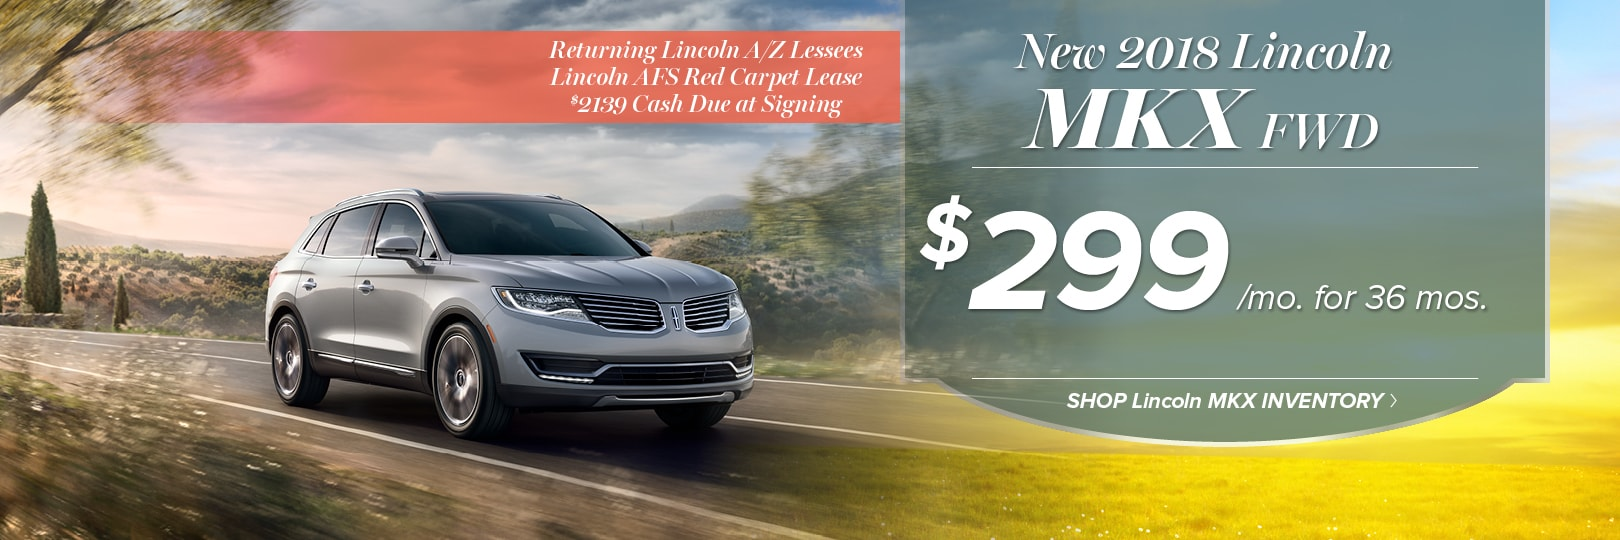 lincoln mkx youtube pembroke fl watch offer pines lease hybrid mkz mkc or